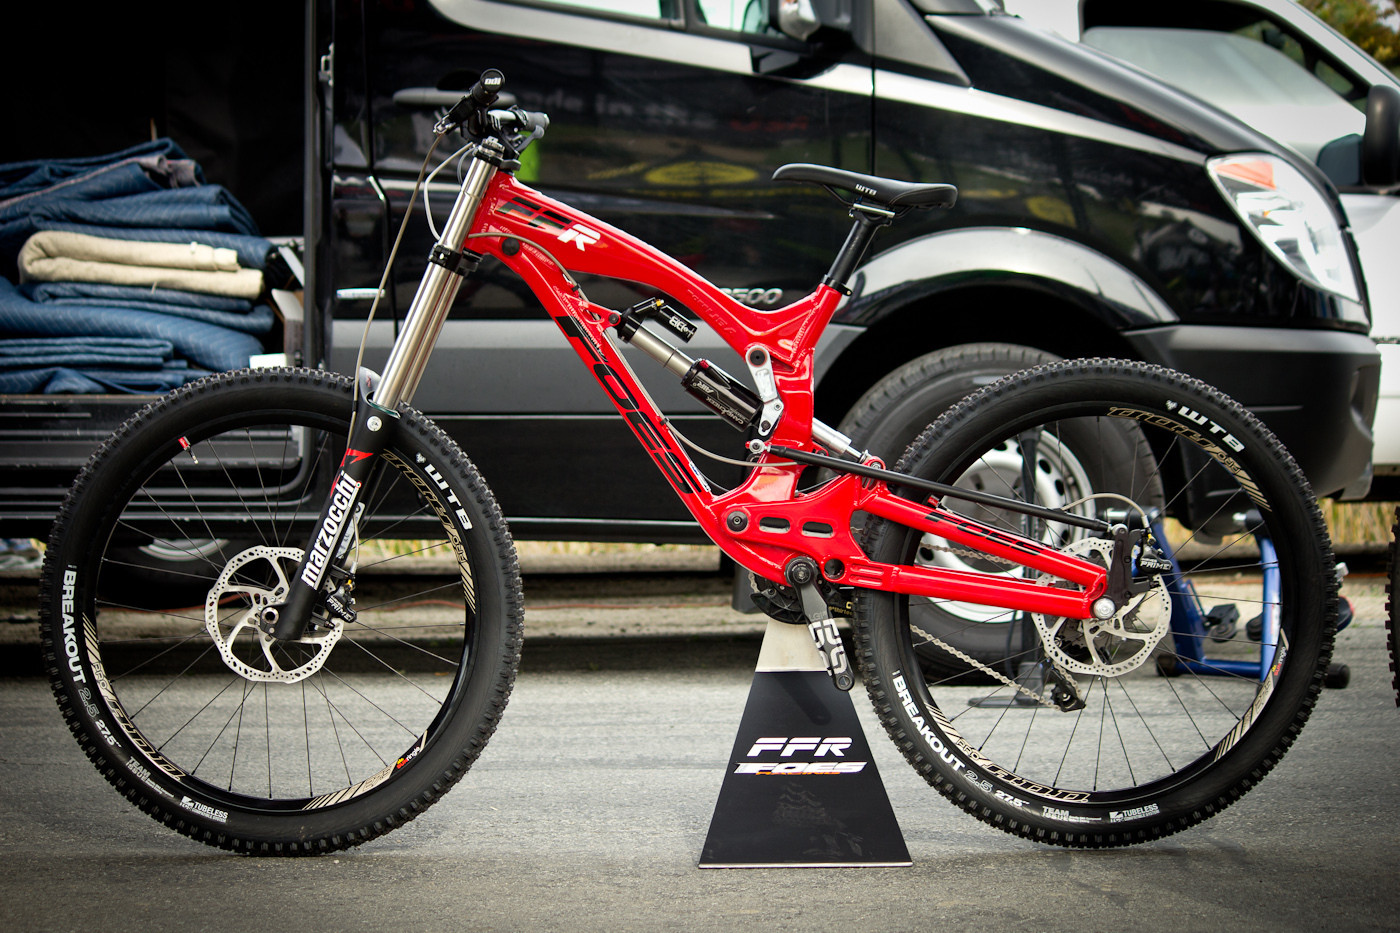 Prototype 2015 Foes FFR Downhill Bike - Sea Otter Classic - 2014 Sea Otter Classic Pit Bits - 1st Edition - Mountain Biking Pictures - Vital MTB